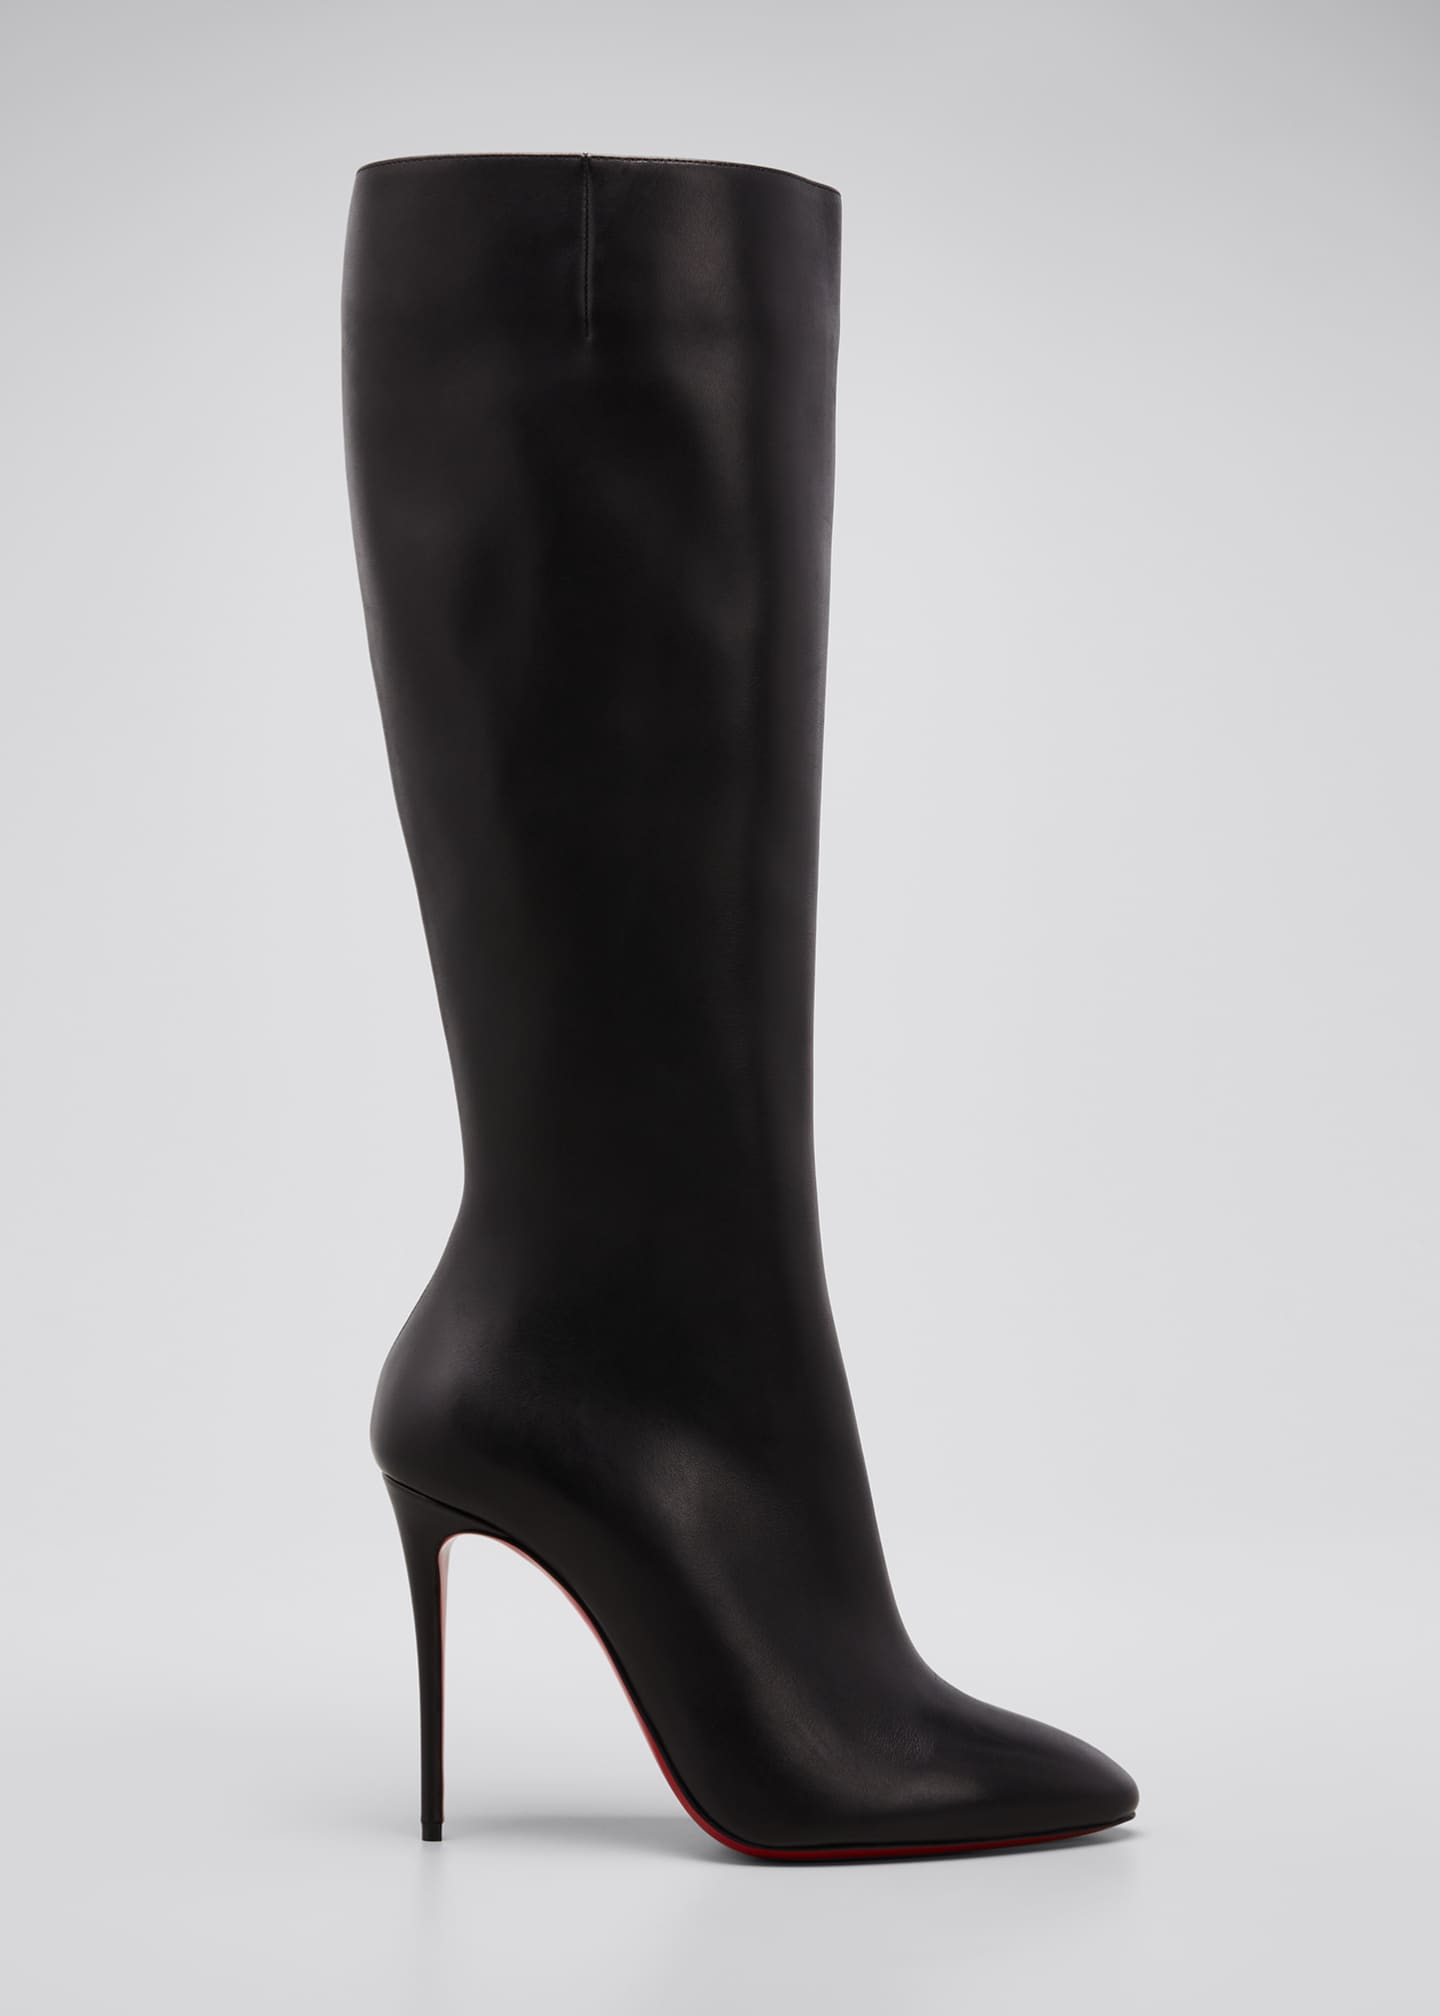 Image 1 of 5: Eloise Zip Red Sole Boots